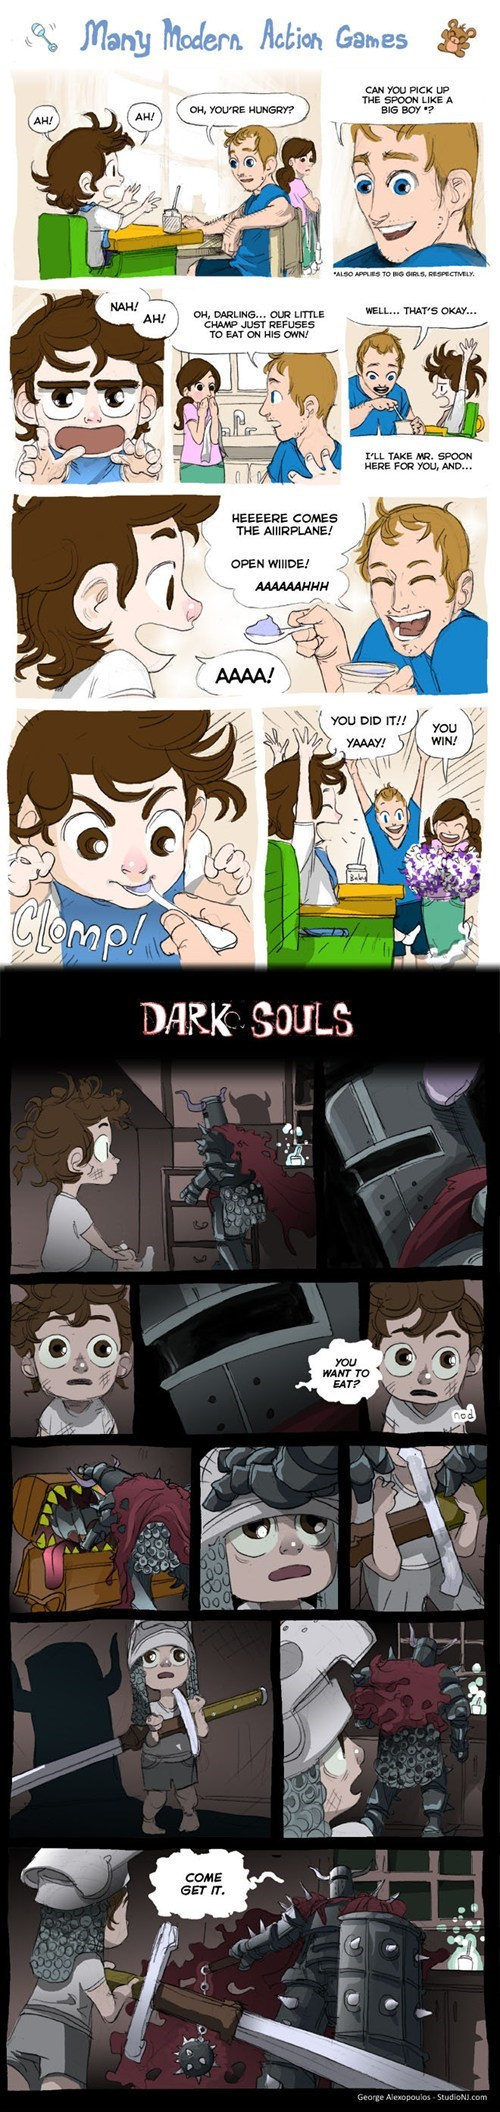 comics dark souls web comics - 7768608256